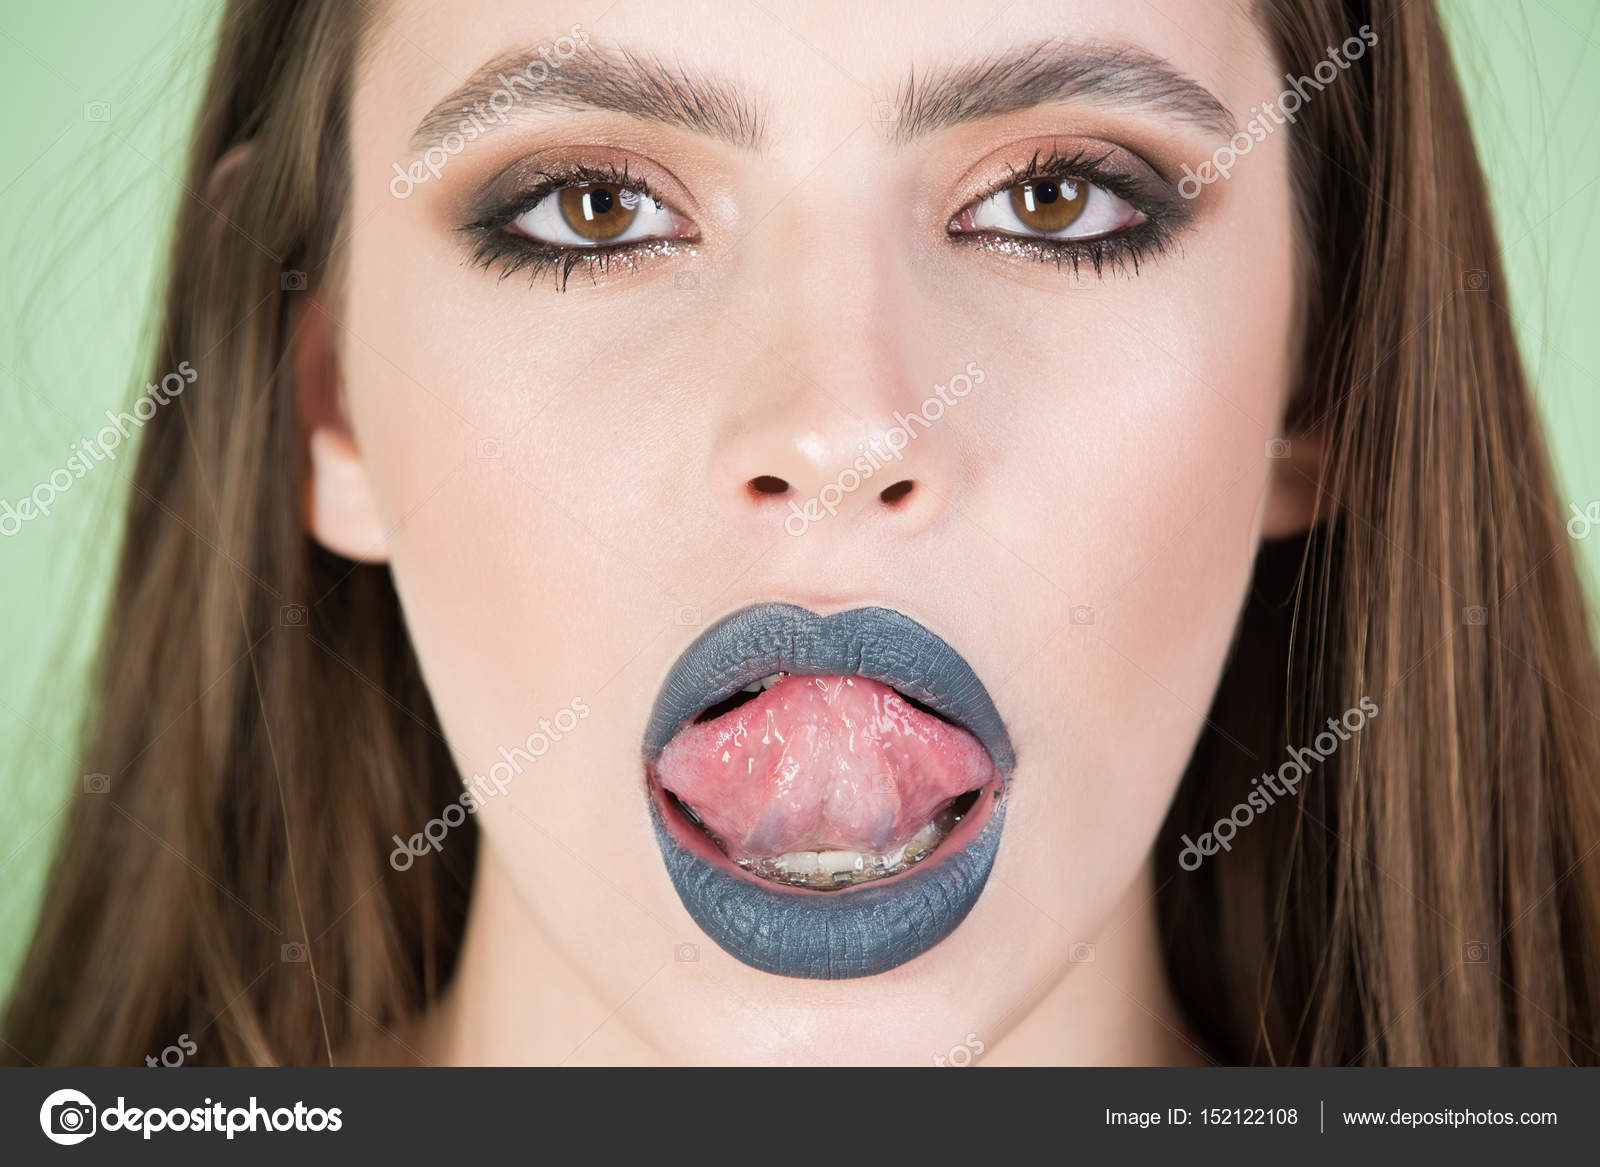 Fashion Beauty Girl With Grey Make Up Showing Tongue